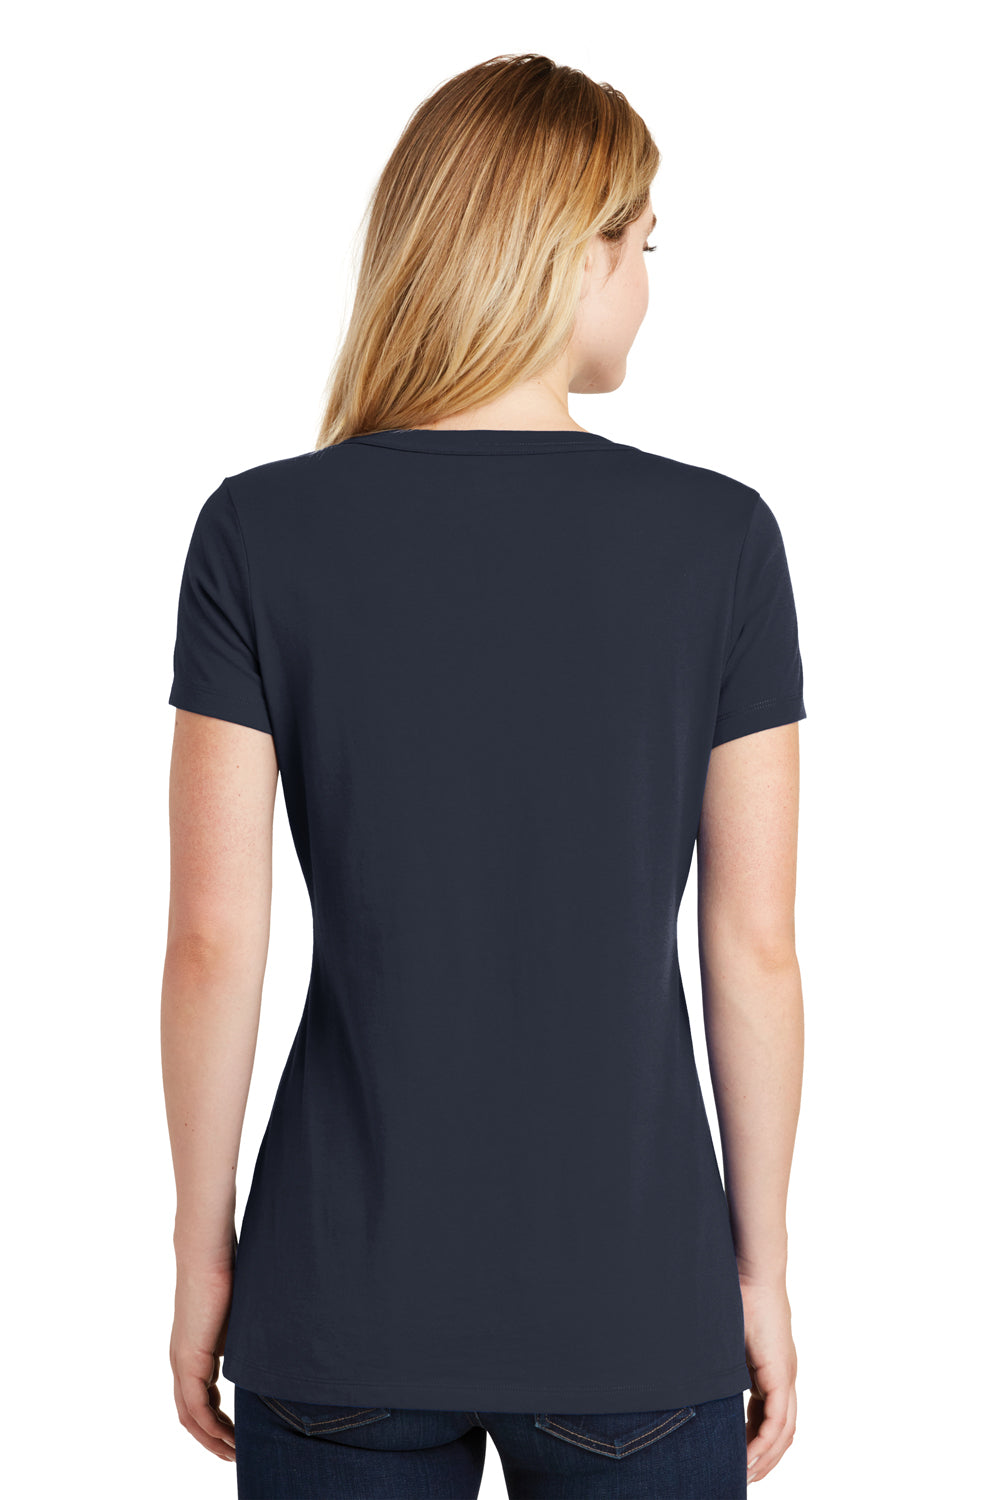 New Era LNEA101 Womens Heritage Short Sleeve V-Neck T-Shirt Navy Blue Back